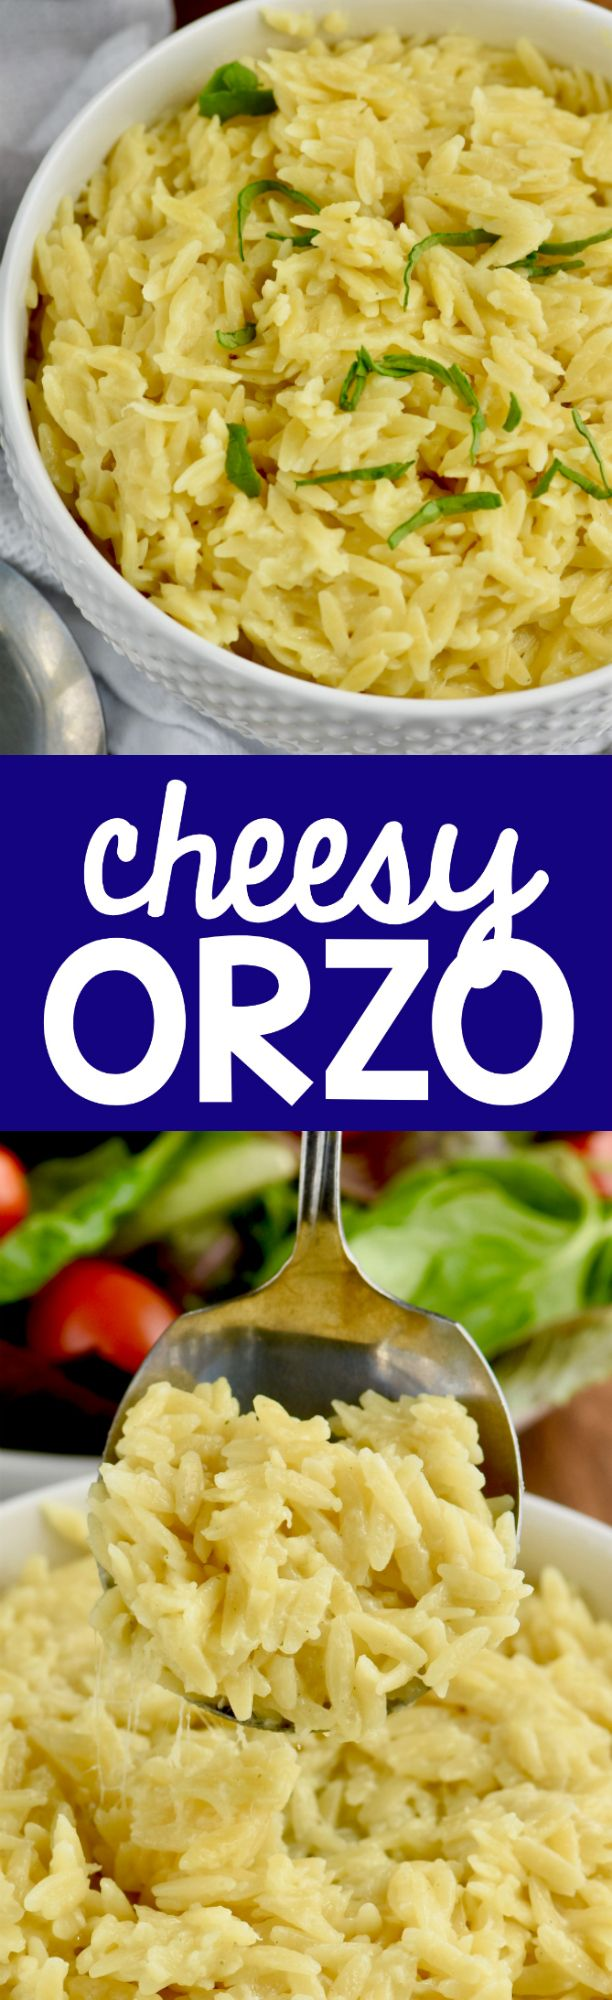 This Cheesy Orzo comes together so fast with only three ingredients and is the perfect side dish!